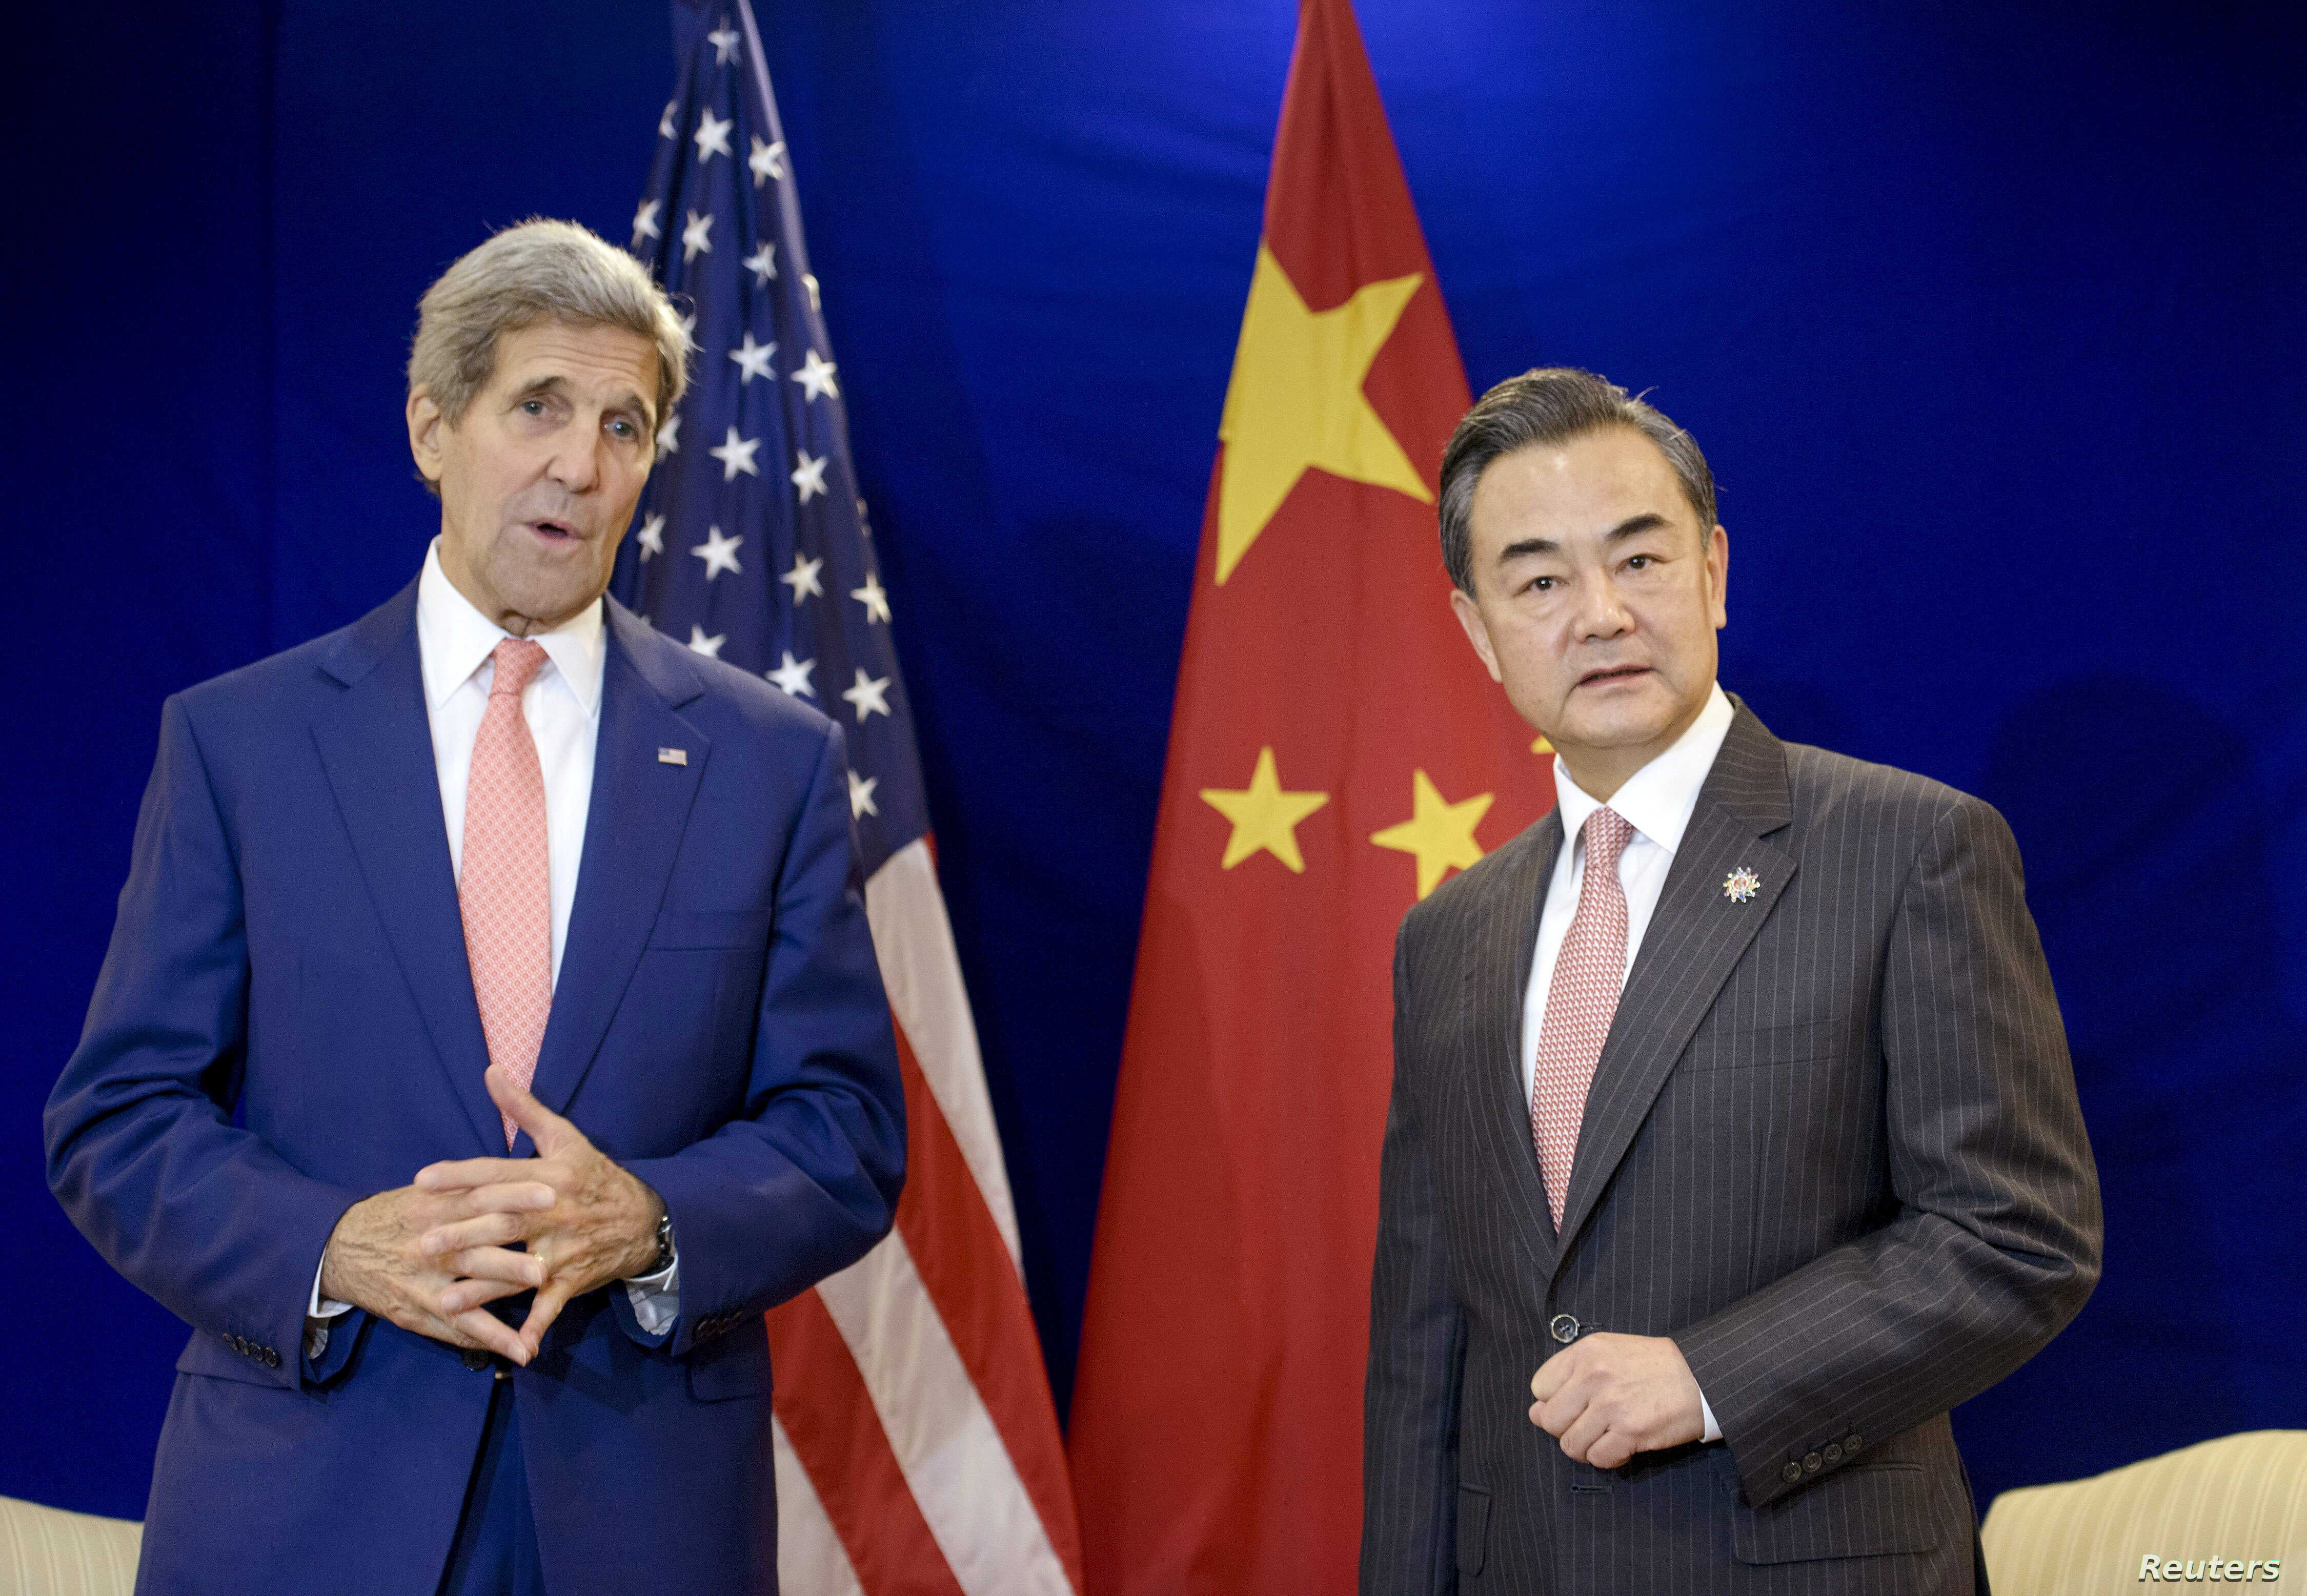 China's Foreign Minister Wang Yi (R) listens while US Secretary of State John Kerry talks before a bilateral meeting at the Putra World Trade Center Aug. 5, 2015 in Kuala Lumpur, Malaysia.